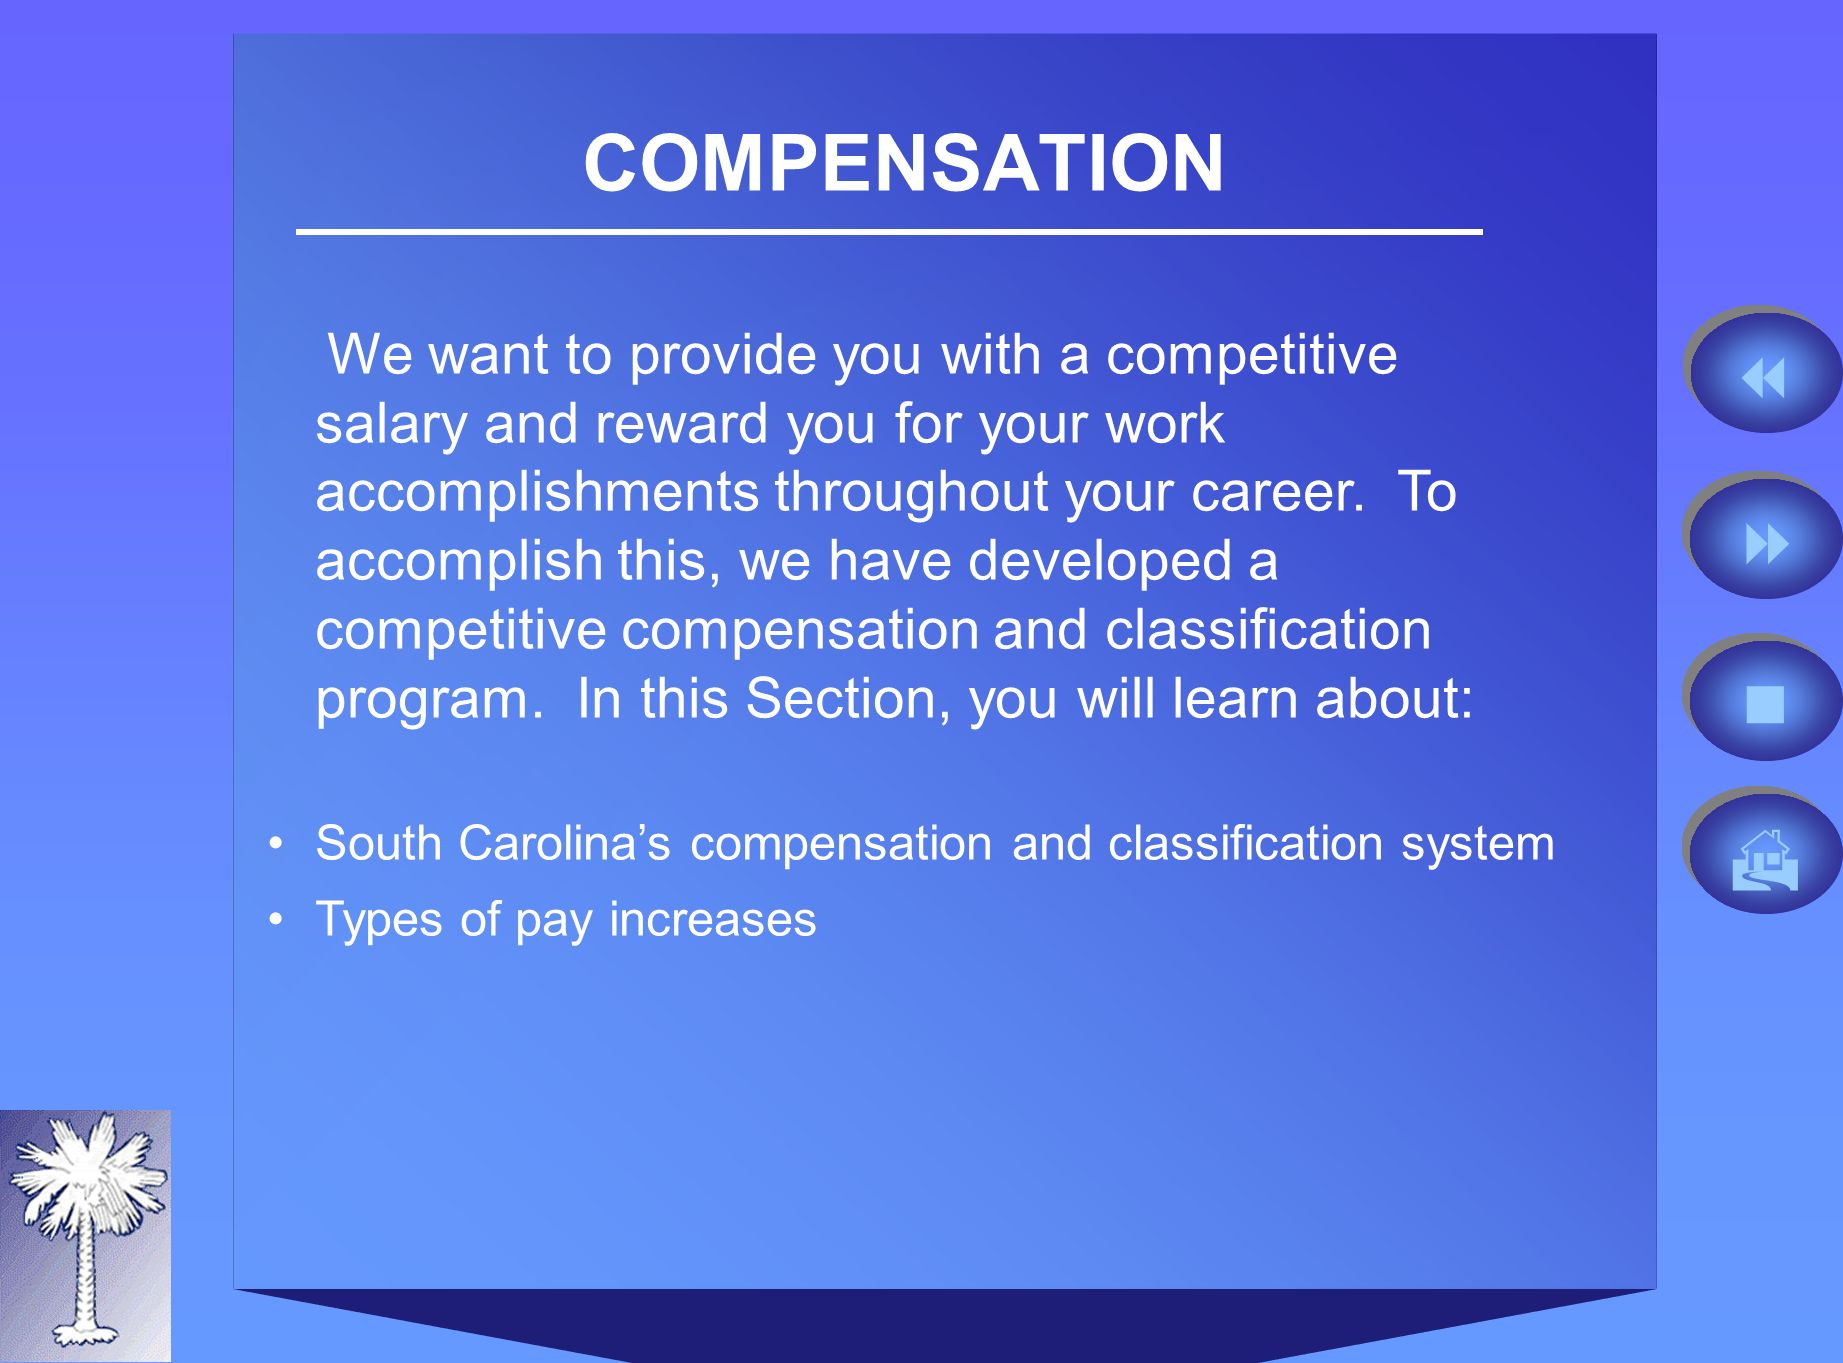 COMPENSATION We want to provide you with a competitive salary and reward you for your work accomplishments throughout your career.